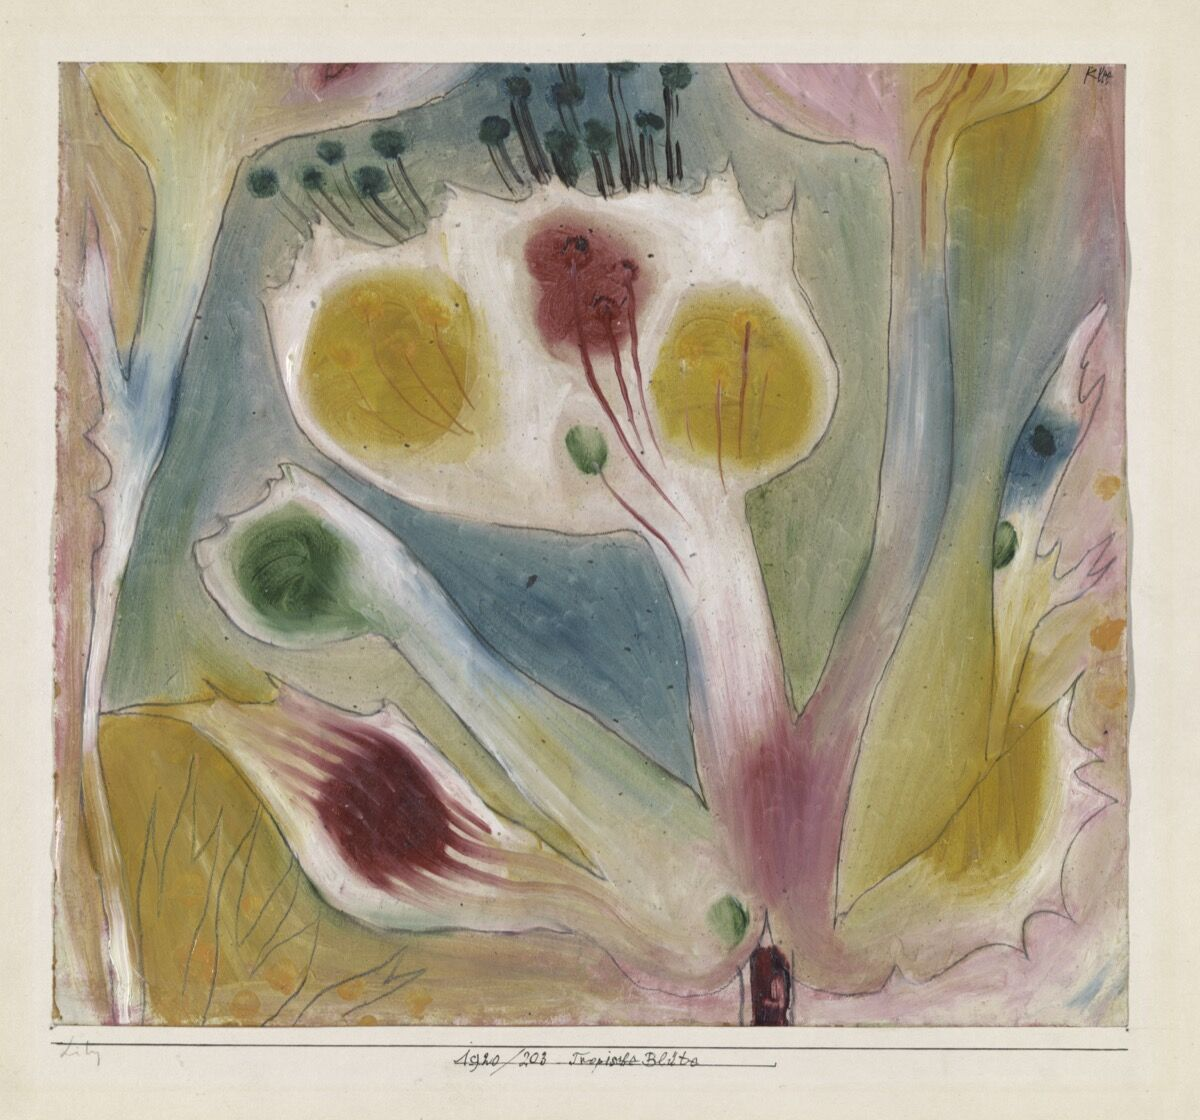 Paul Klee, Tropical Blossom, 1920. Zentrum Paul Klee, Bern Switzerland. Courtesy of the Phillips Collection.